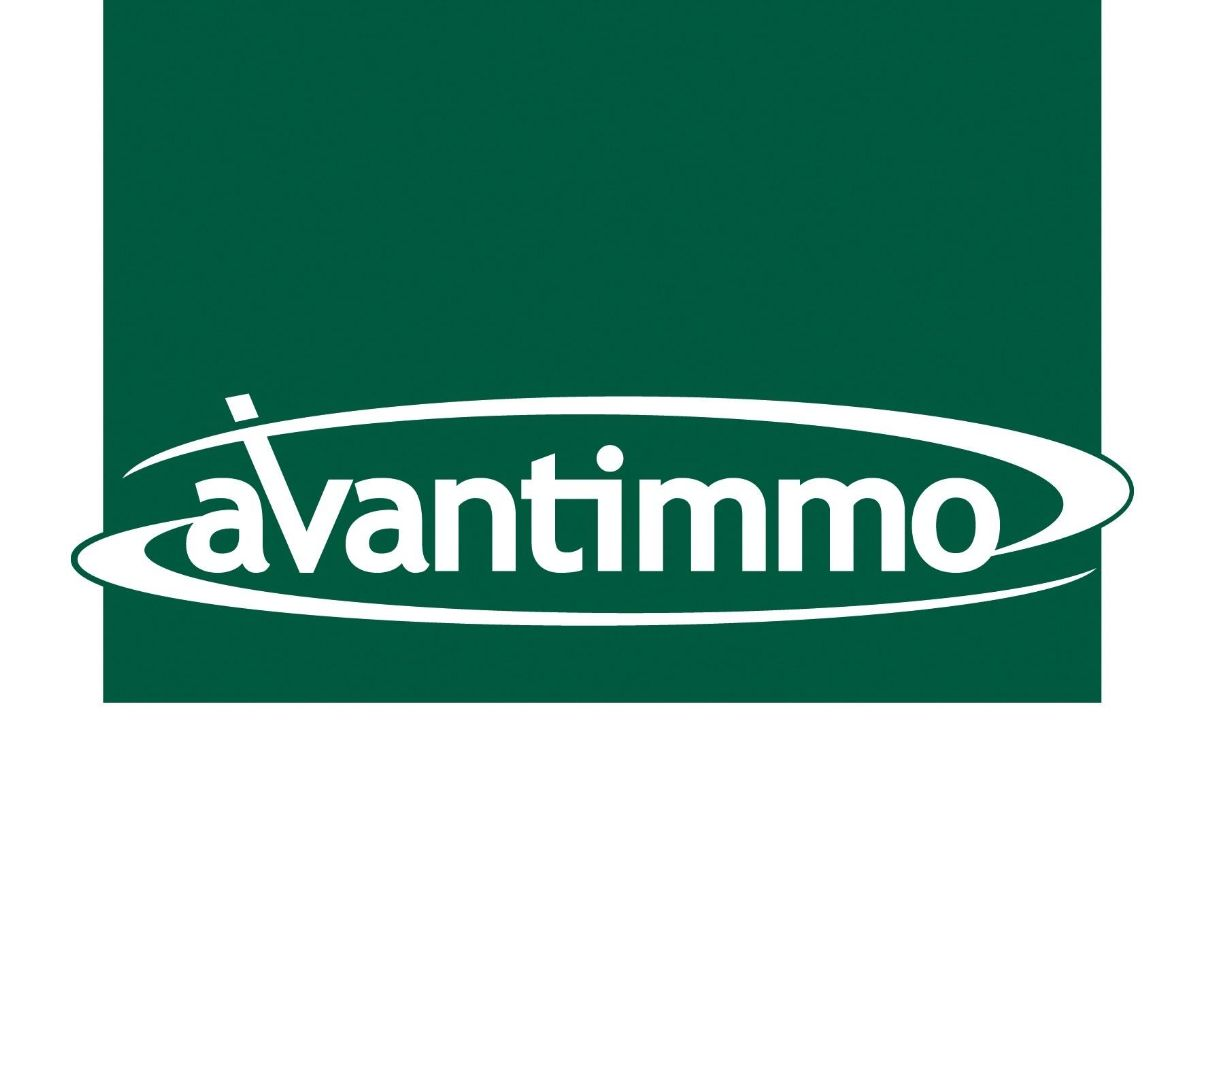 Avantimmo agence immobili re sur realo for Agence immobiliere 85